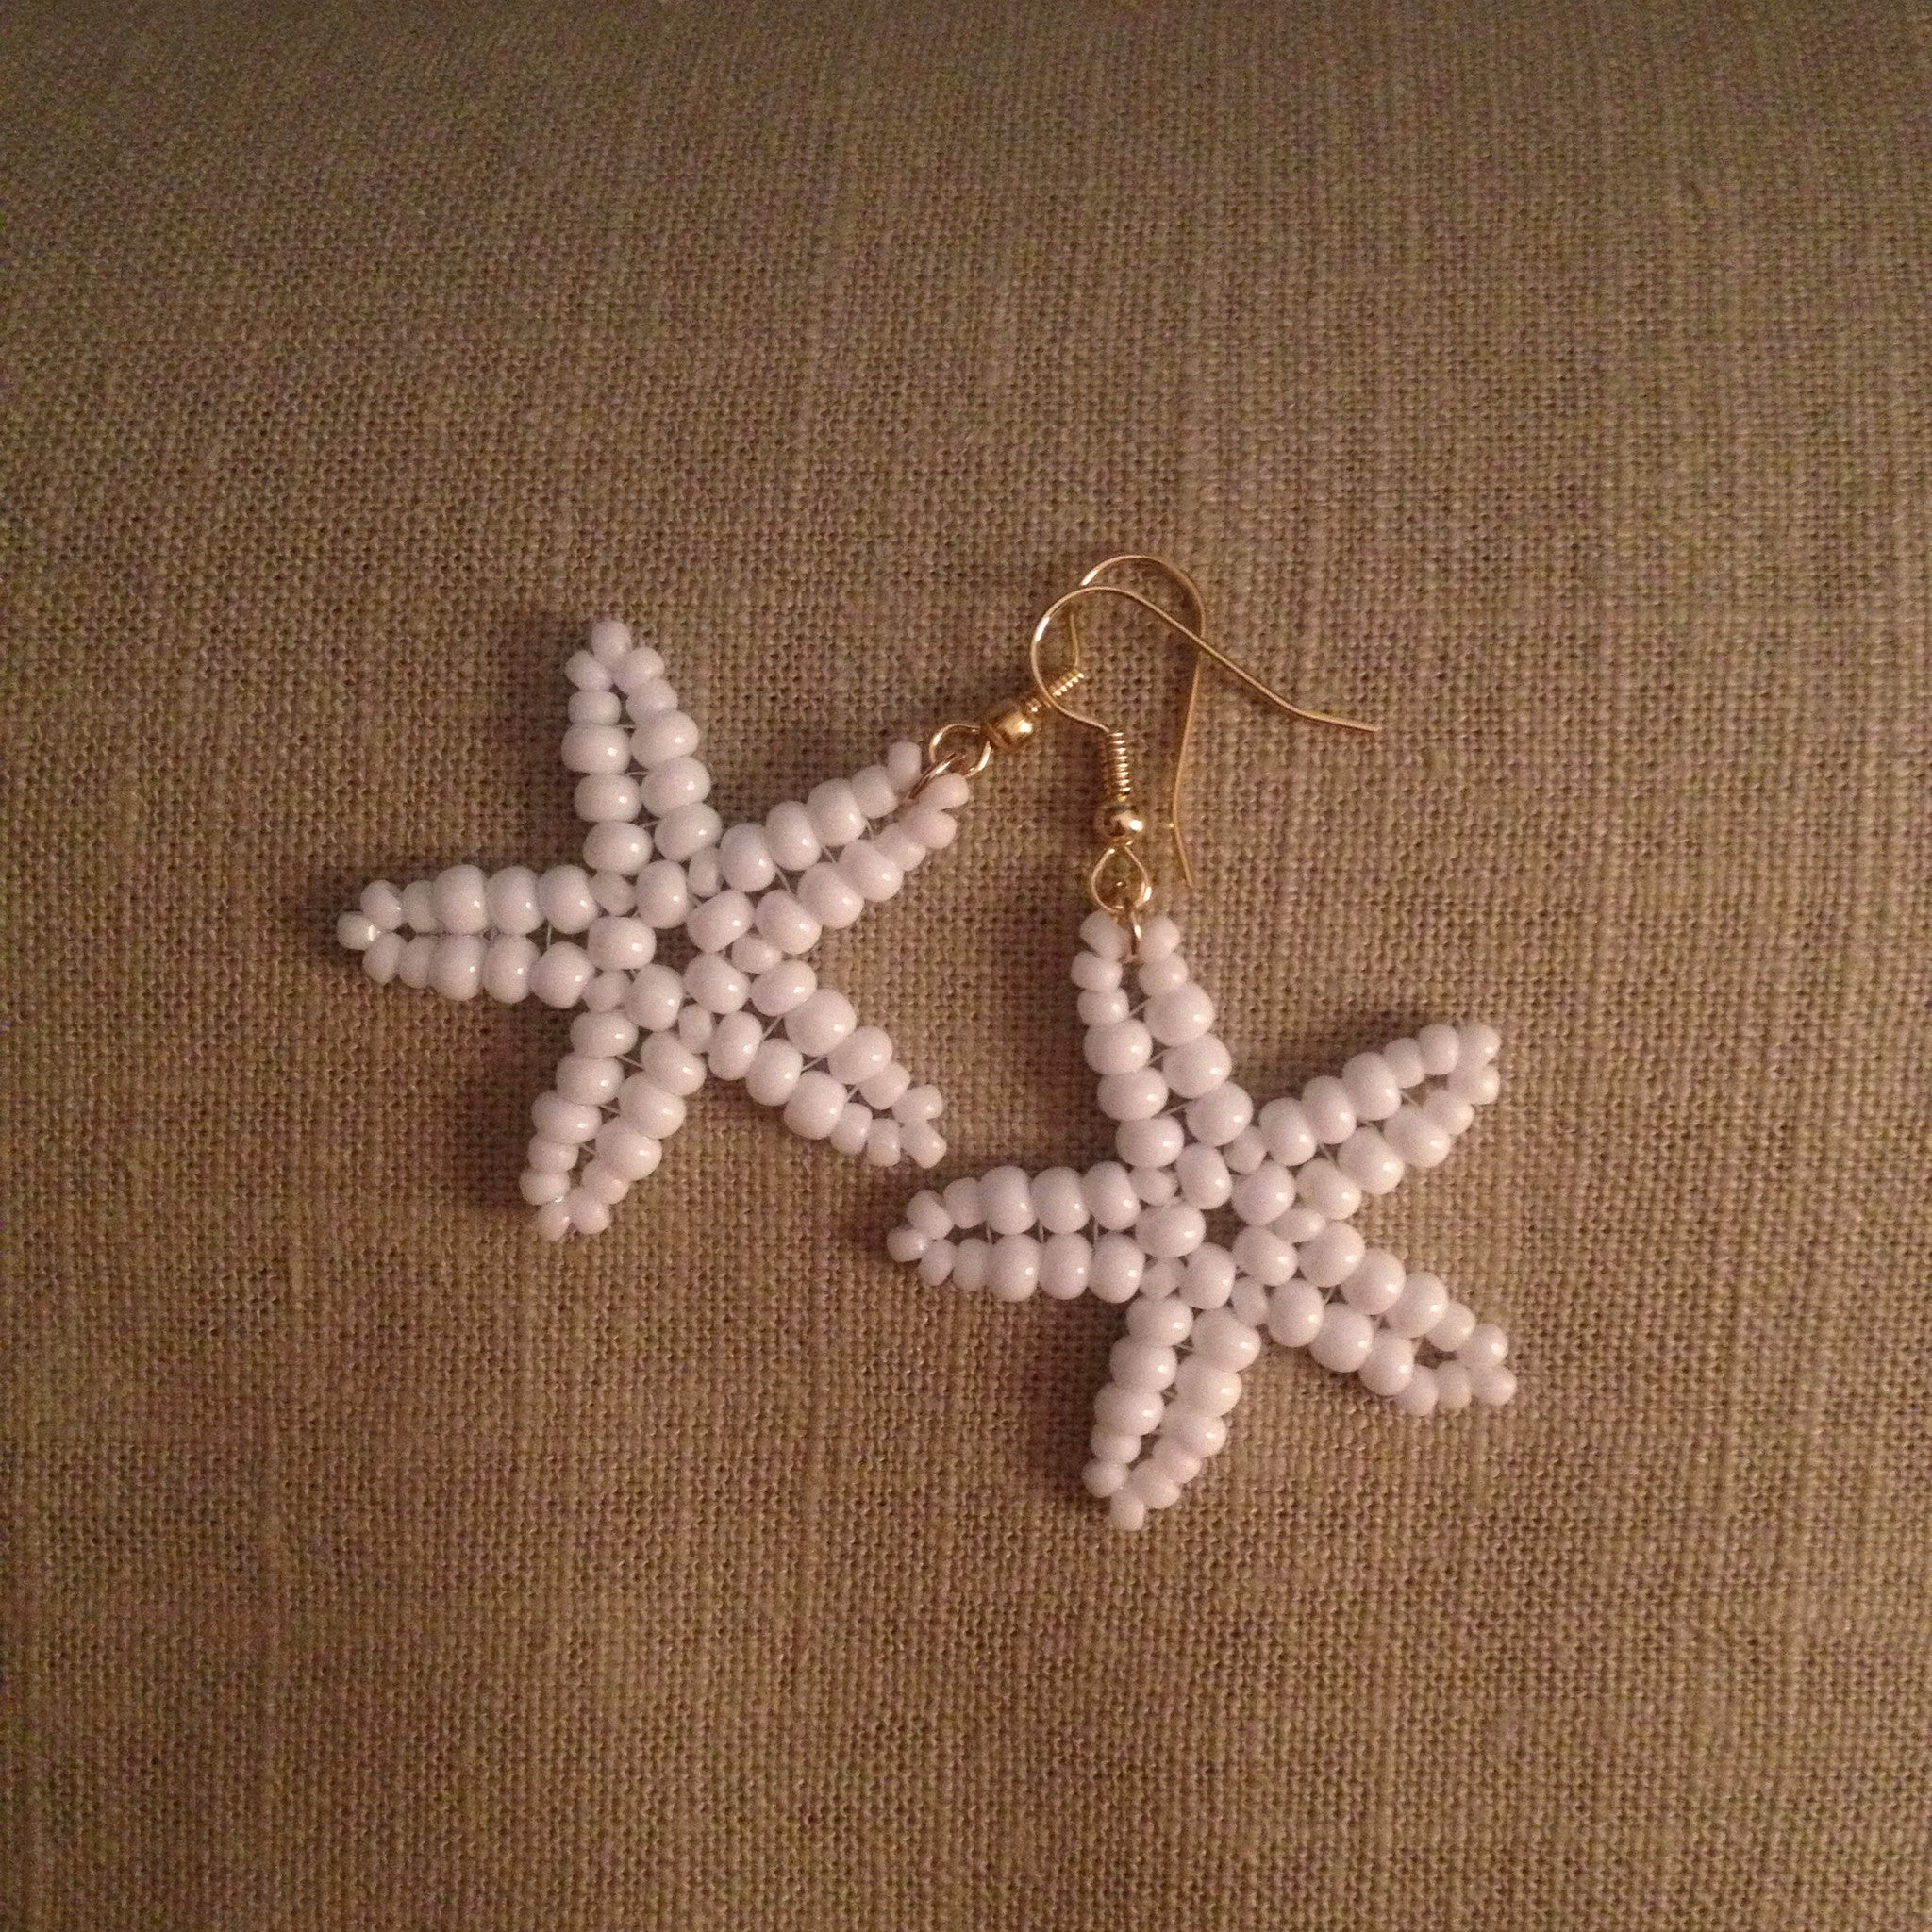 Starfish beaded handmade earrings white resort style cruise wear beachy fun